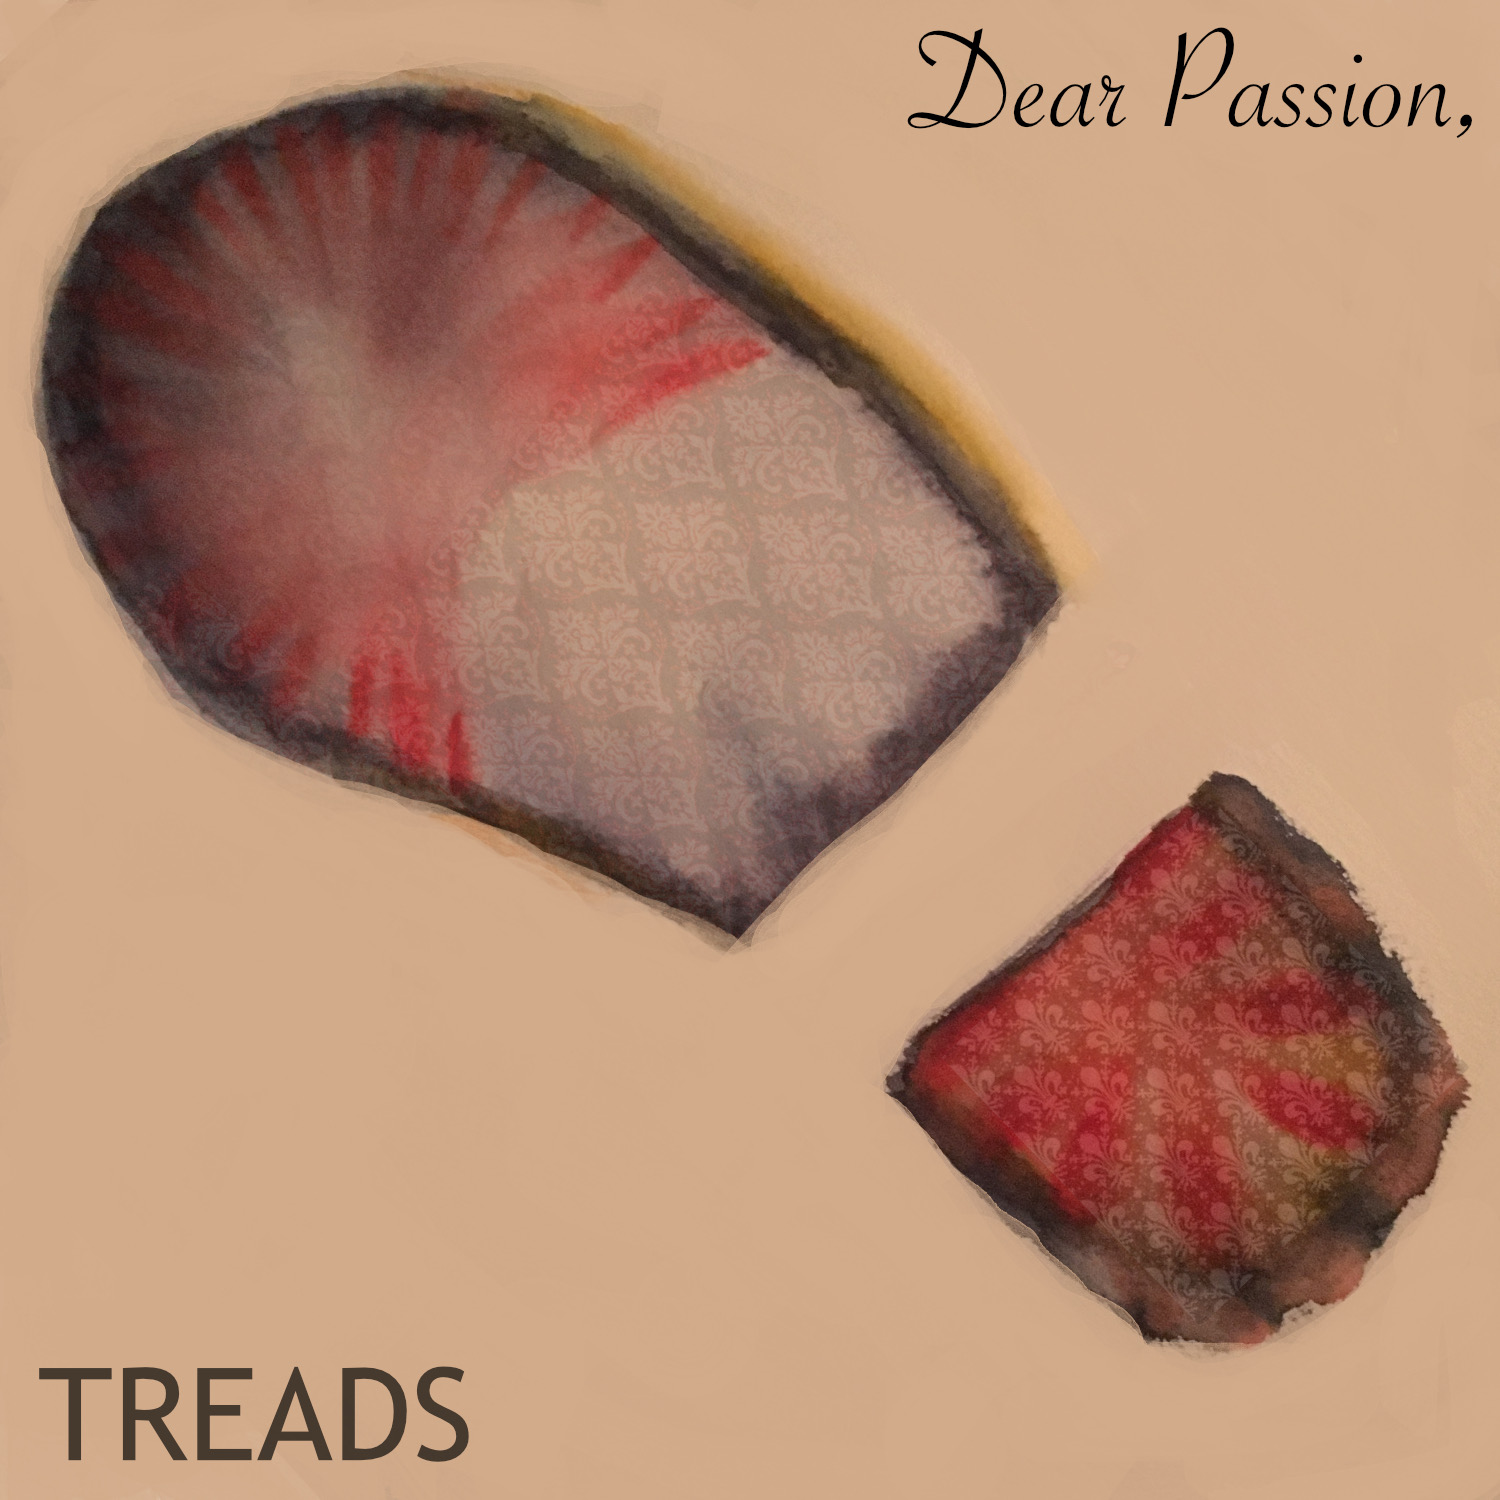 Dear Passions Album Art EP2